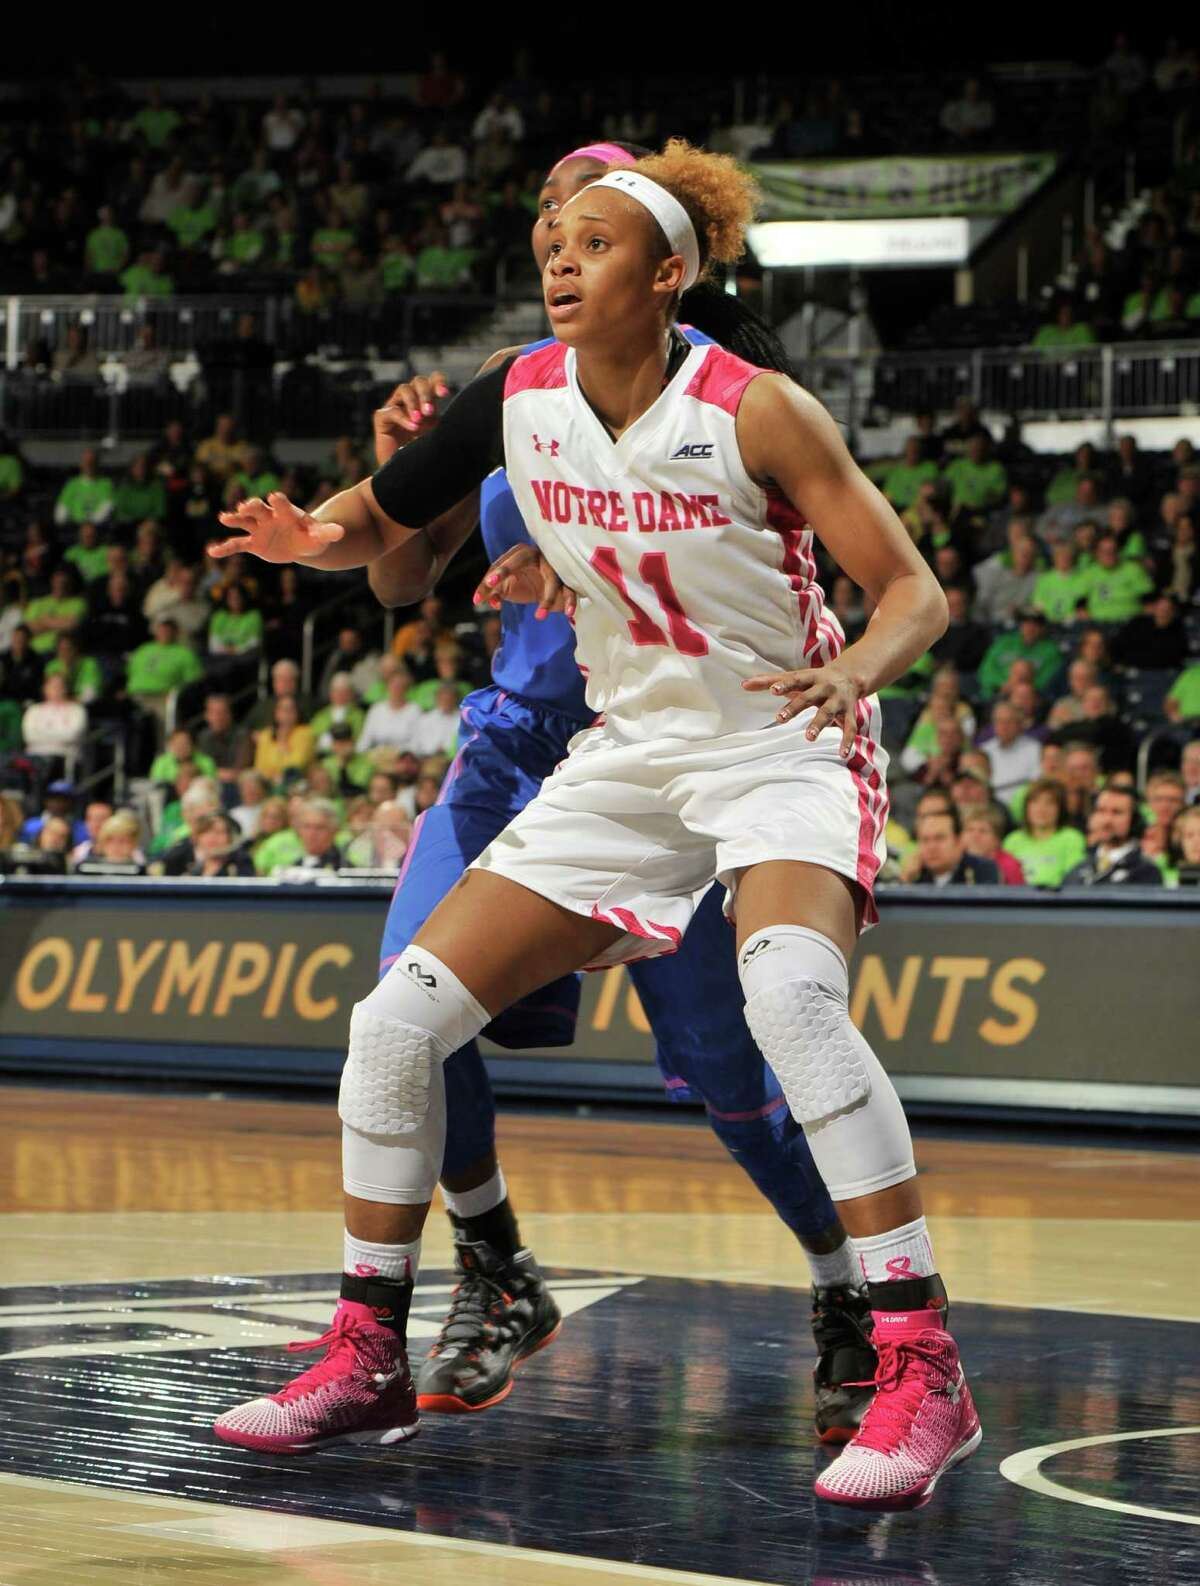 Freshman forward Brianna Turner is making her mark at Notre Dame, averaging more than 14 points and seven rebounds for the Fighting Irish.